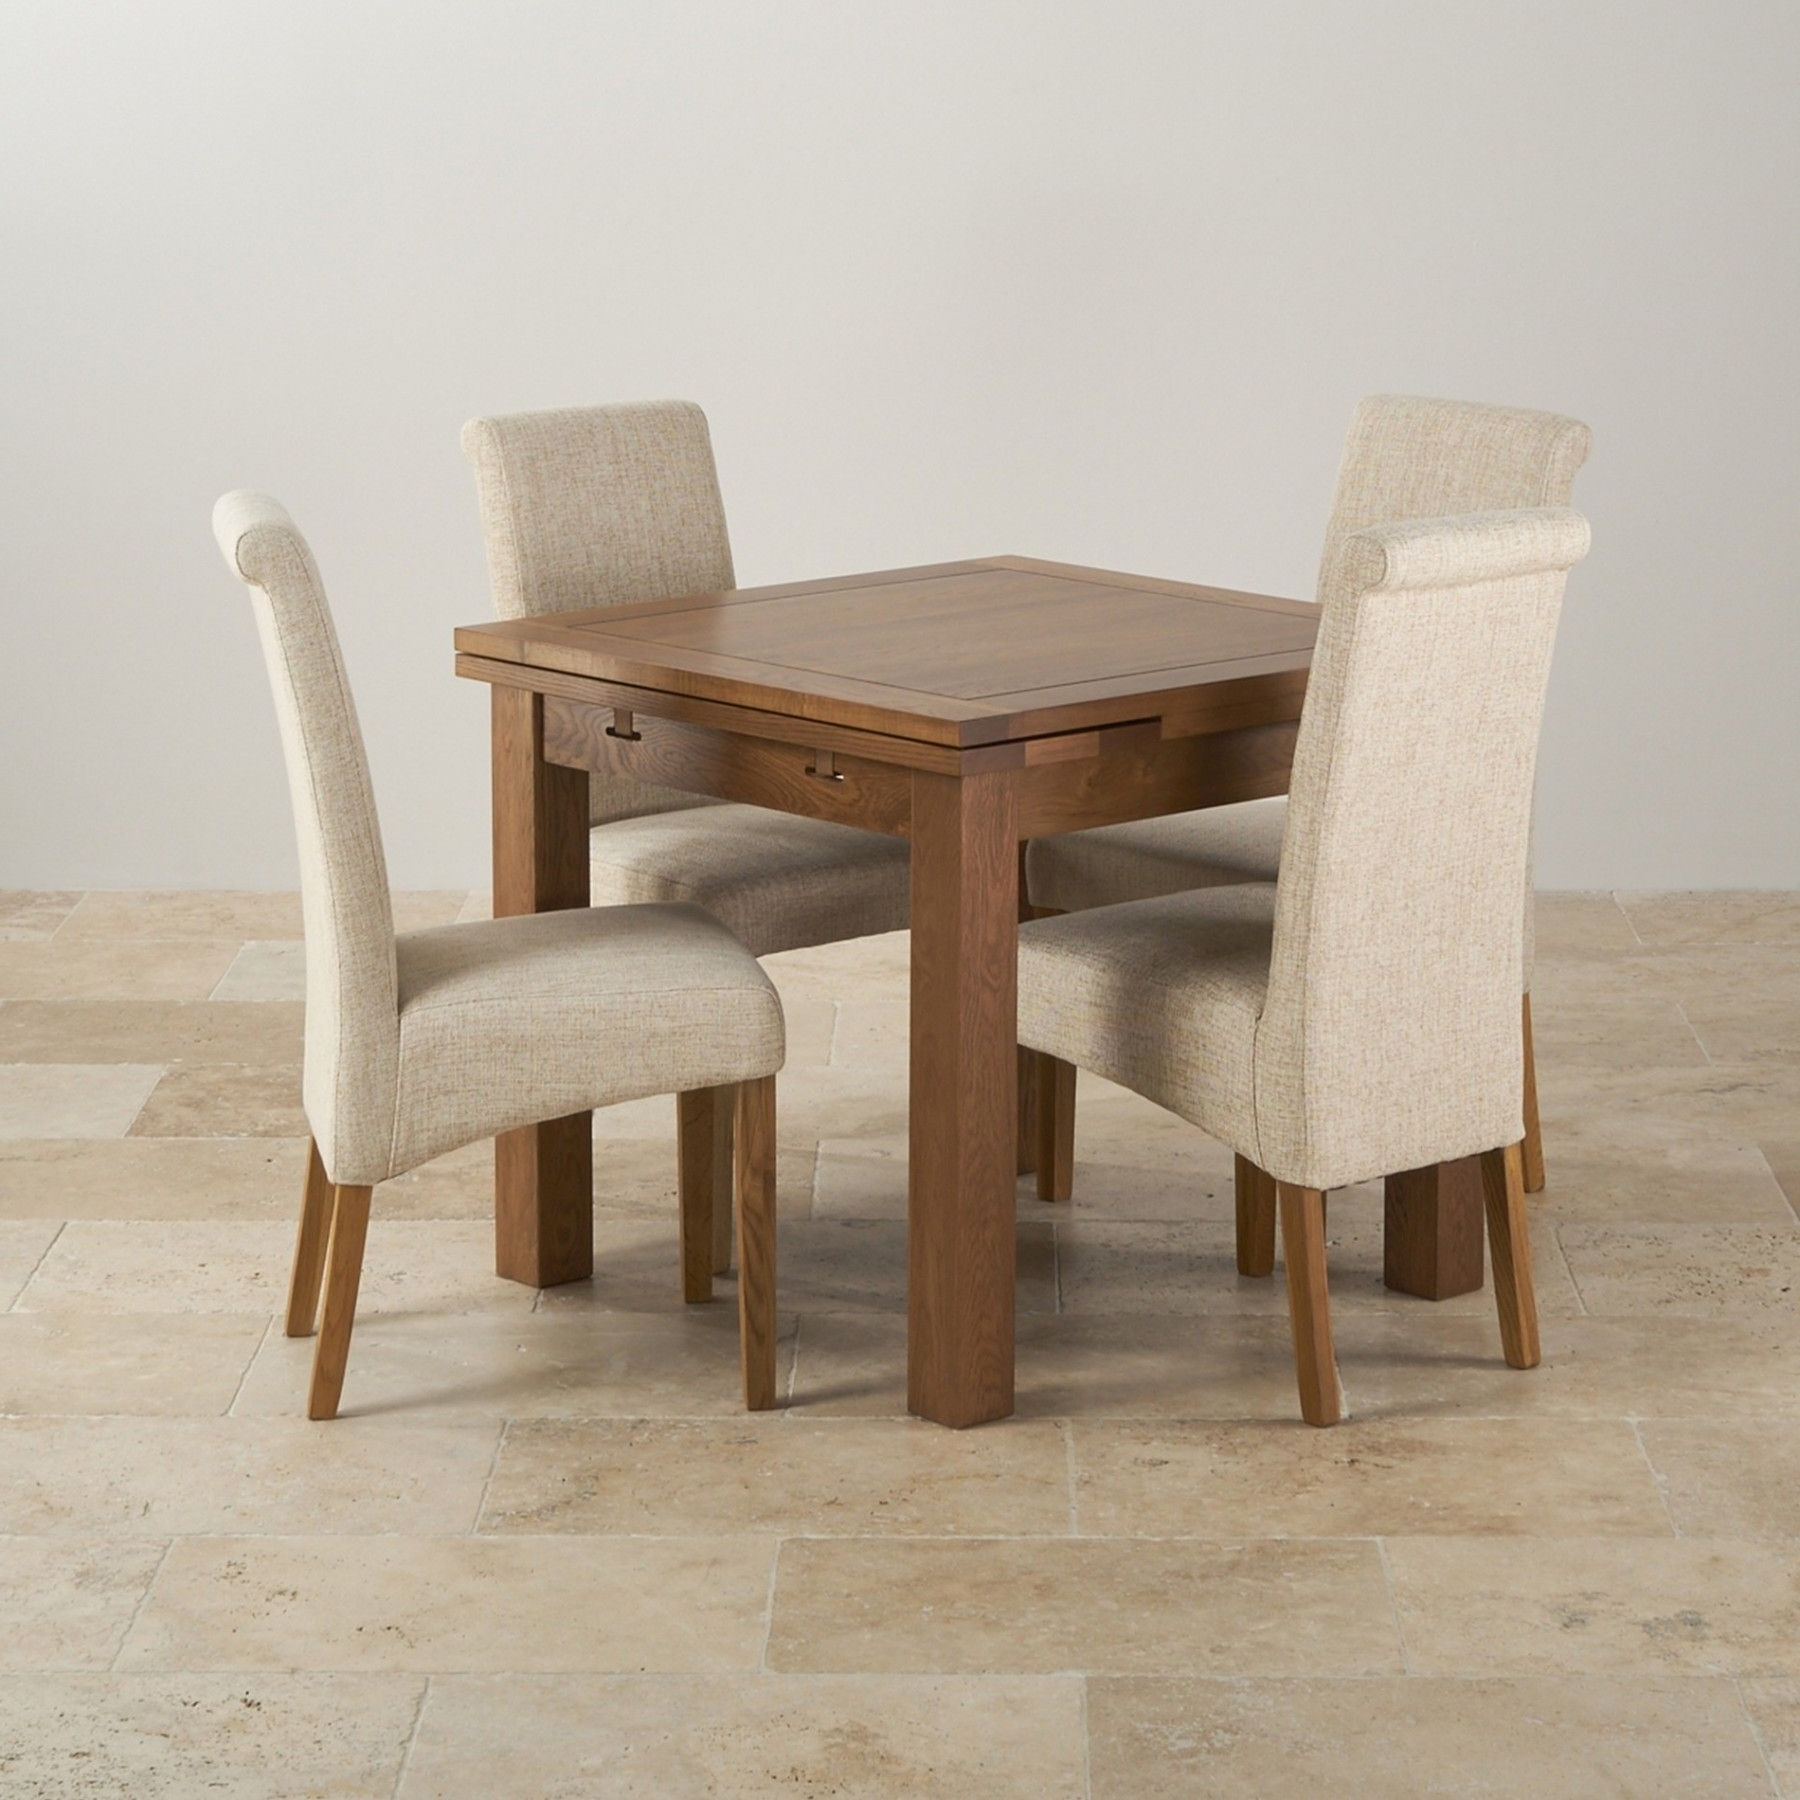 Most Recently Released Oak Extending Dining Tables Sets With Regard To The Rustic 3Ft X 3Ft Solid Oak Extending Dining Table And Four High (View 10 of 25)